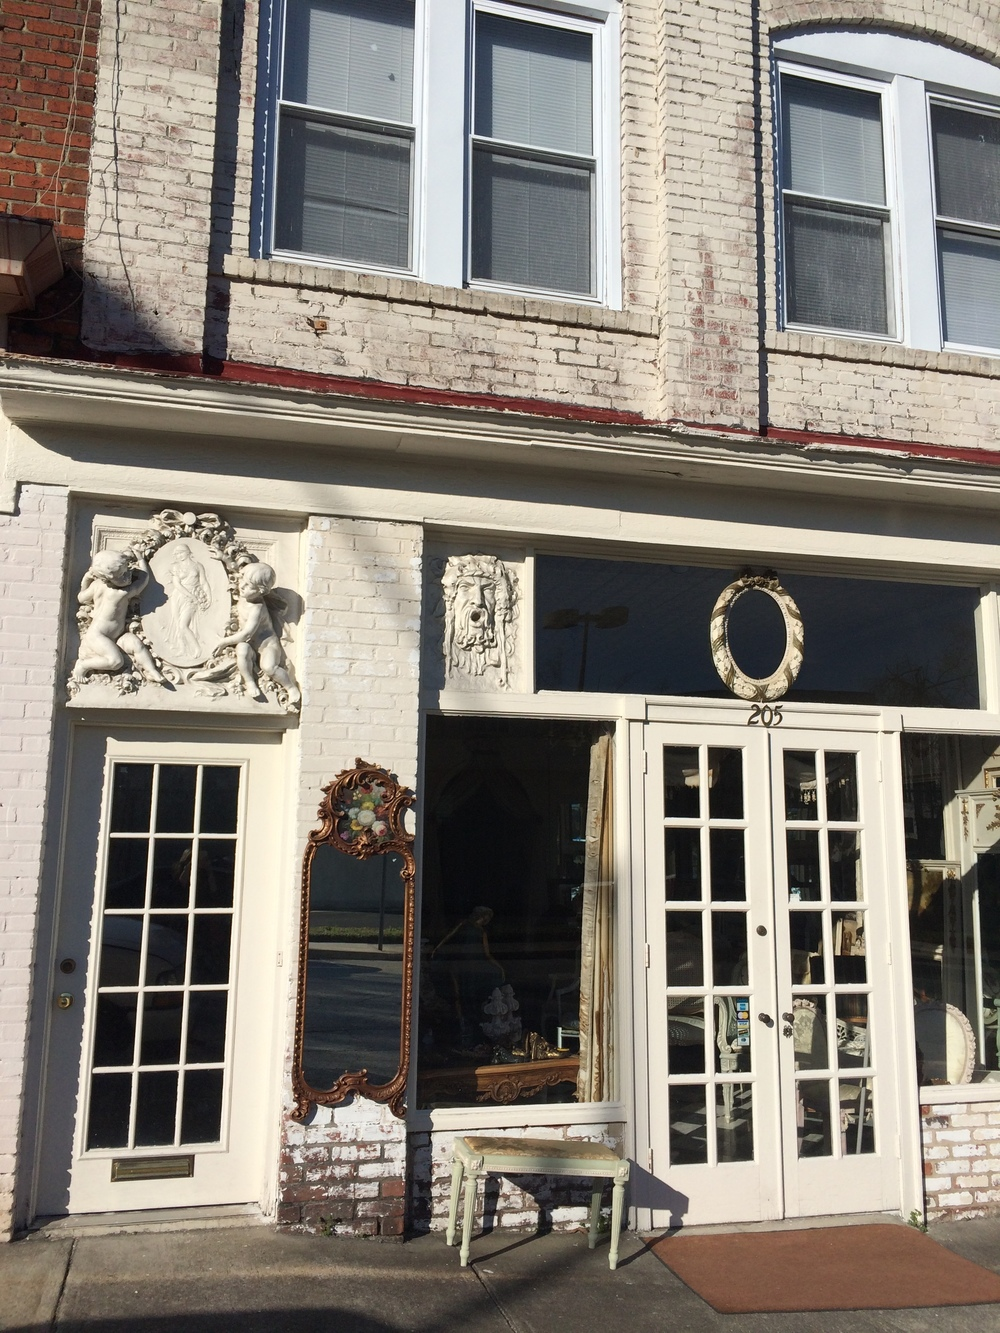 A beautiful old storefront in High Point